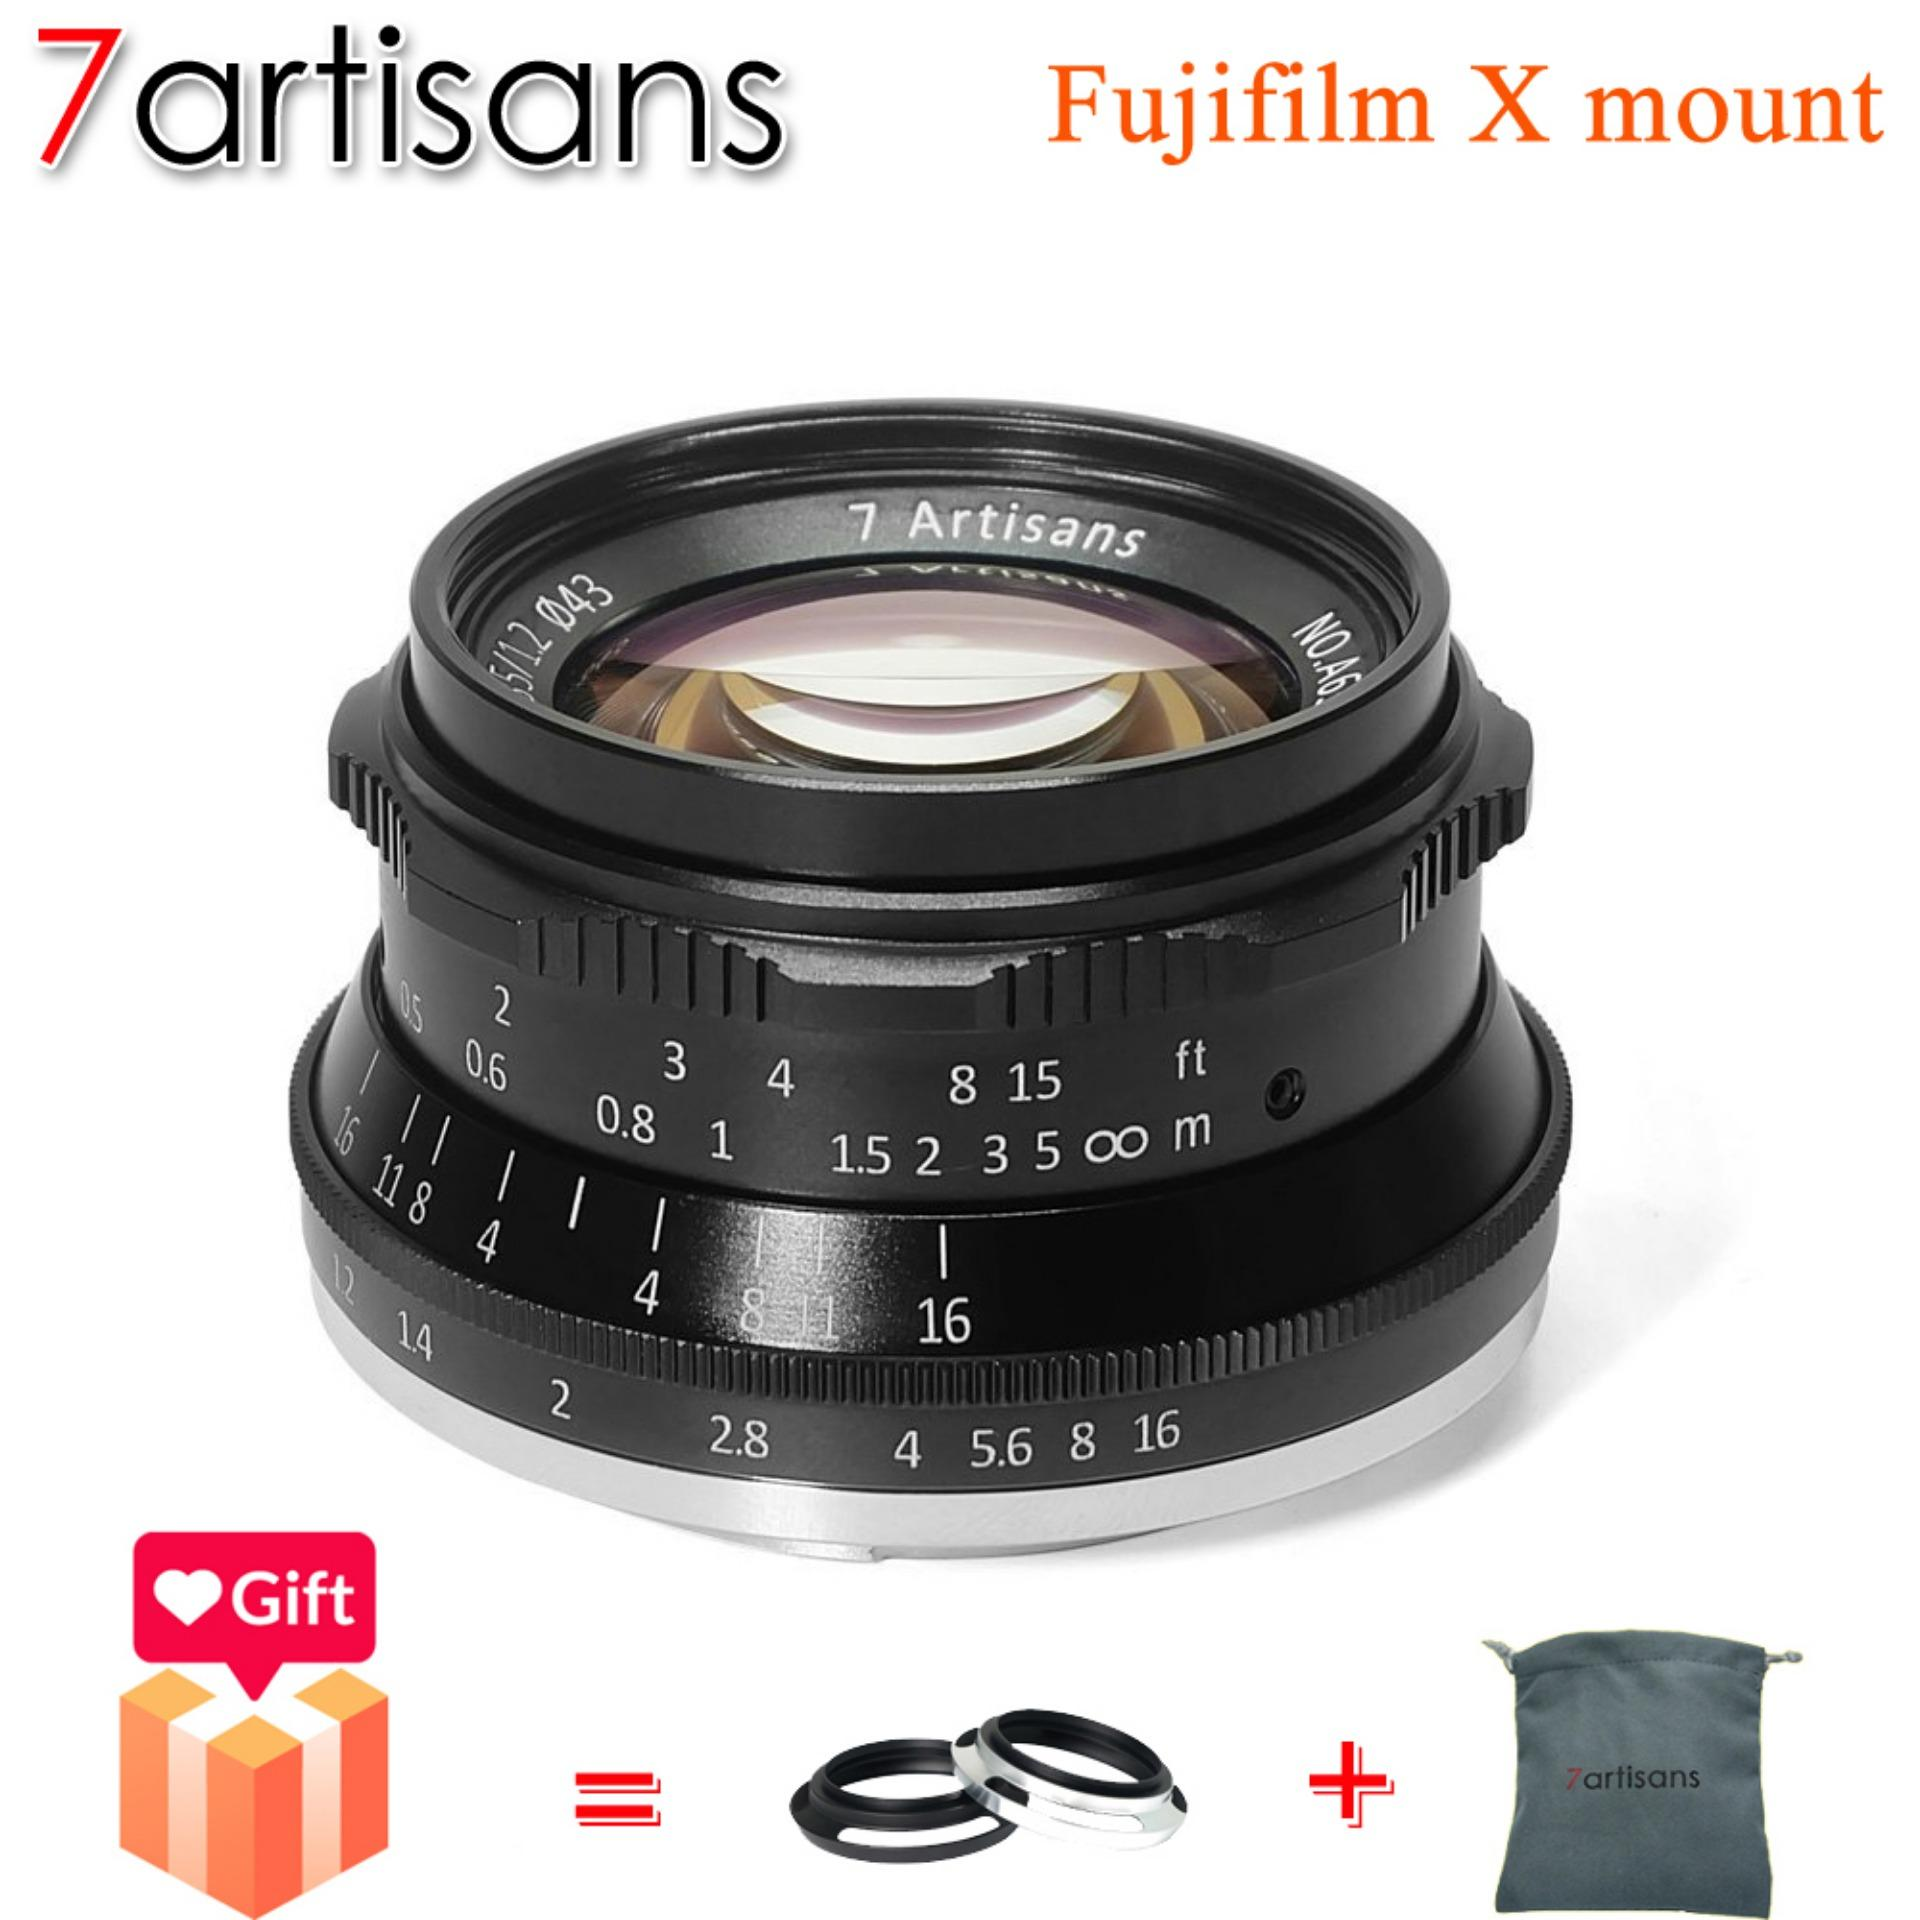 7artisans Fujifilm 35mm F1.2 APS-C Large Aperture Portrait Landscape Manual Focus Micro Single Lens Widely Fit for Compact Mirrorless Camera Fuji X-A1 X-A10 X-A2 X-A3 A-AT X-M1 X-M2 X-T1 X-T10 X-T2 X-T20 X-Pro1 X-Pro2 X-E1 X-E2 (Black)